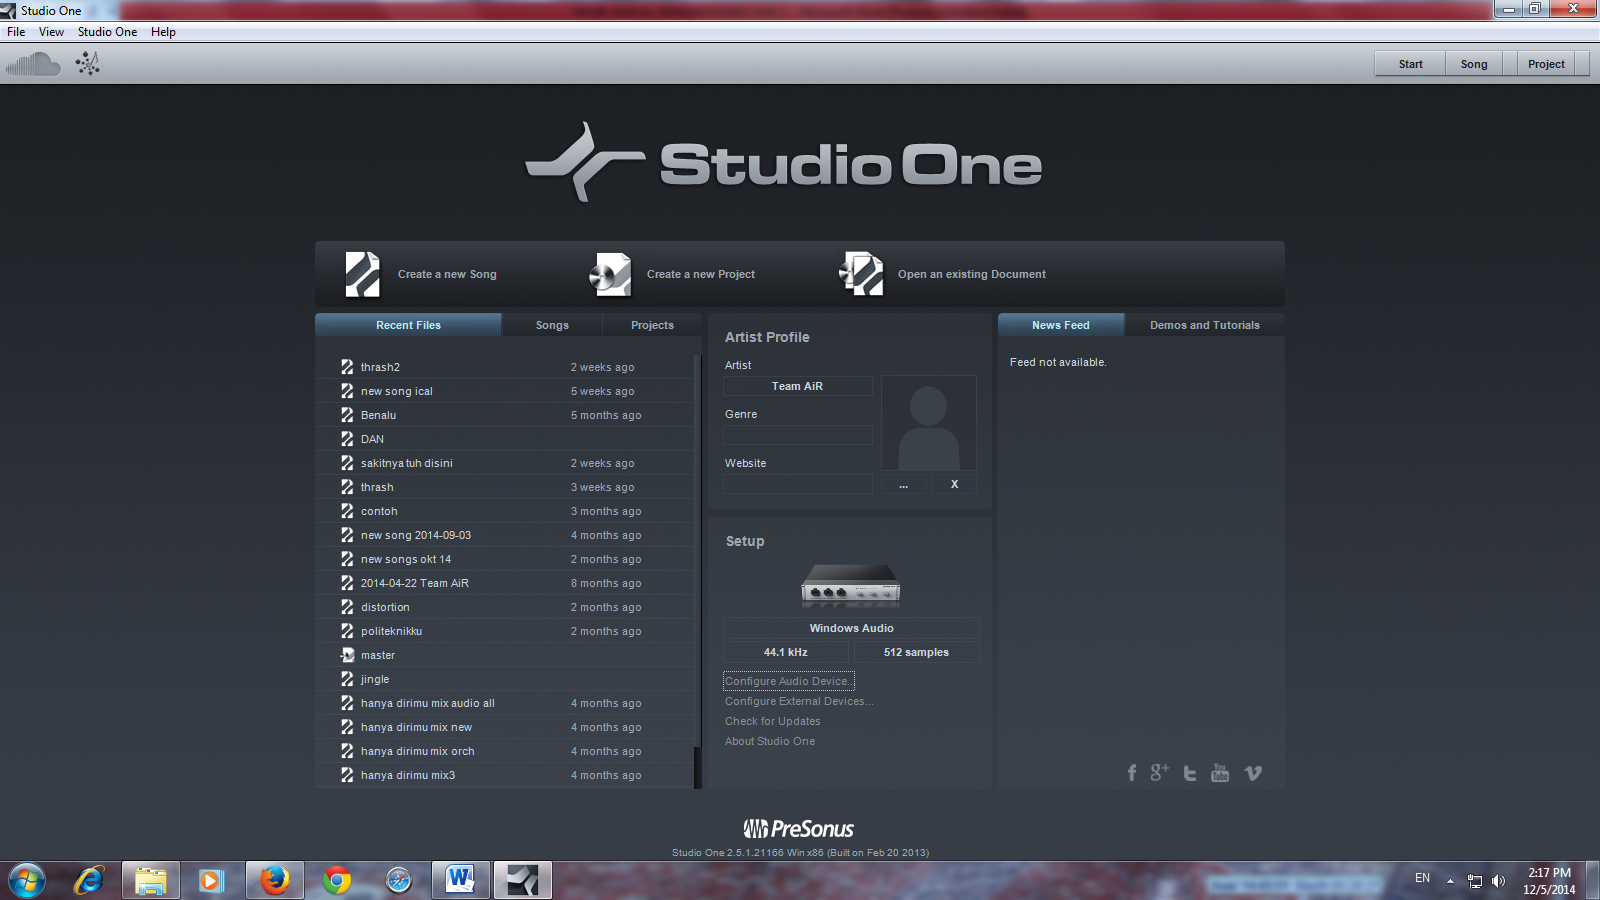 menu awal studio one